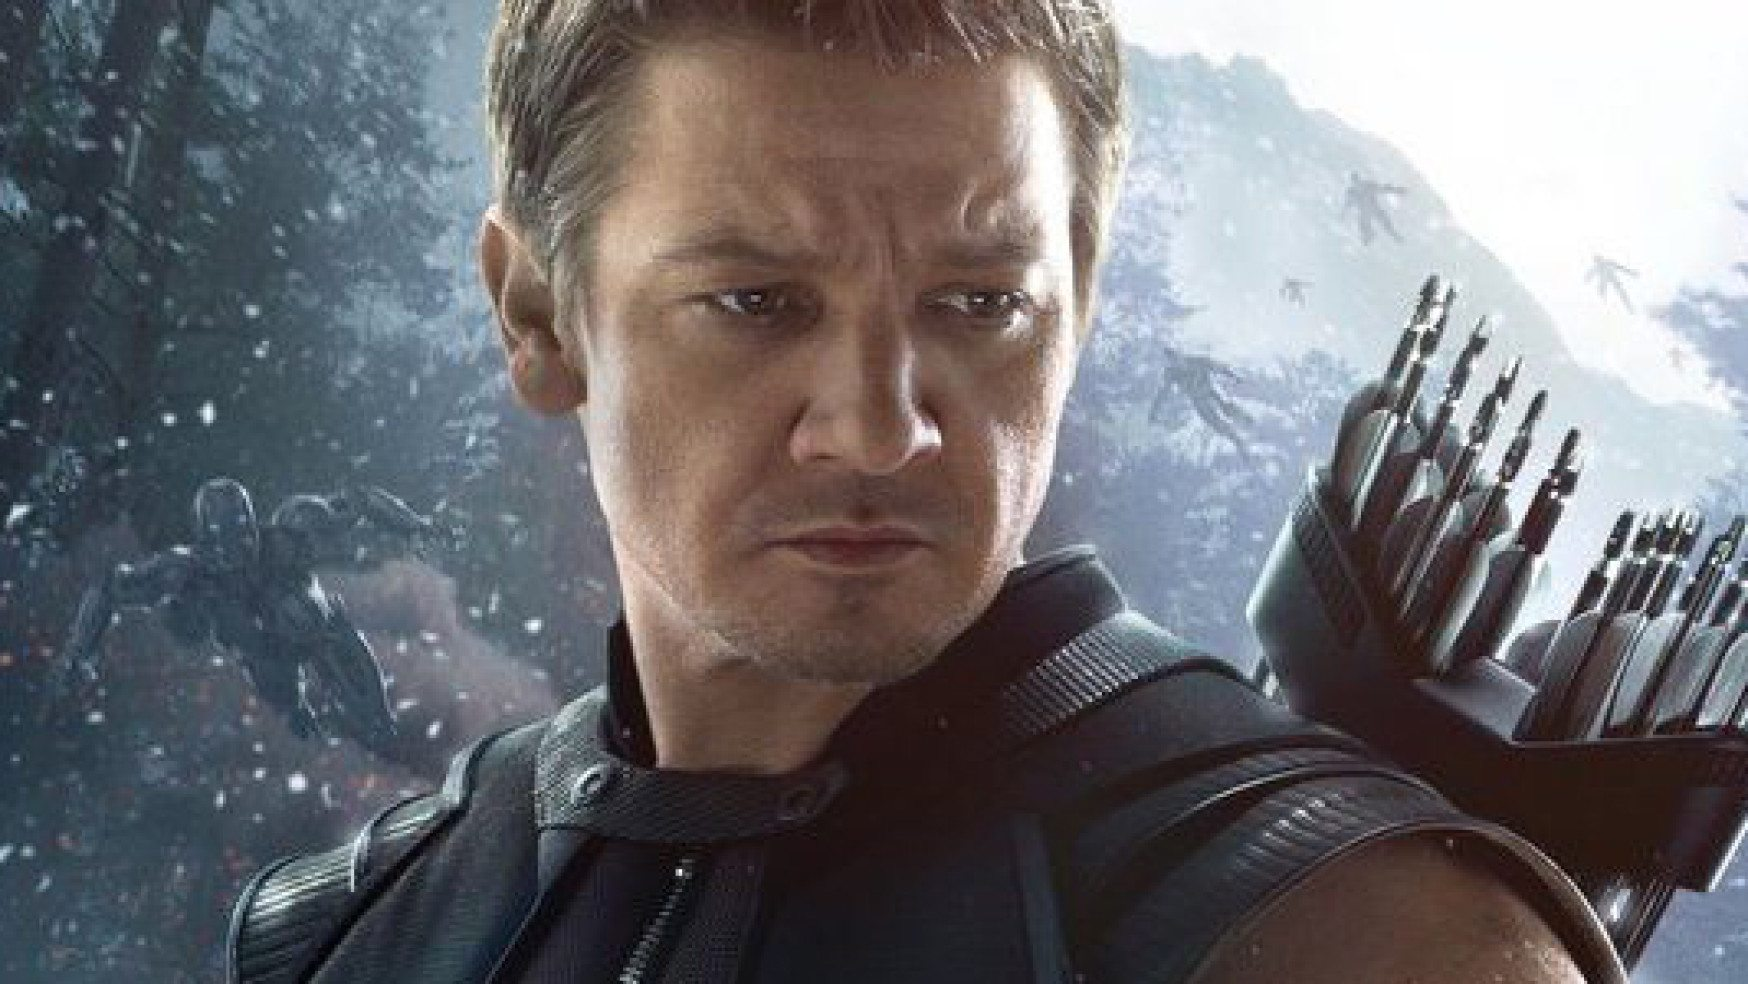 Jeremy Renner turned down Hellboy role in Guillermo del Toro's film